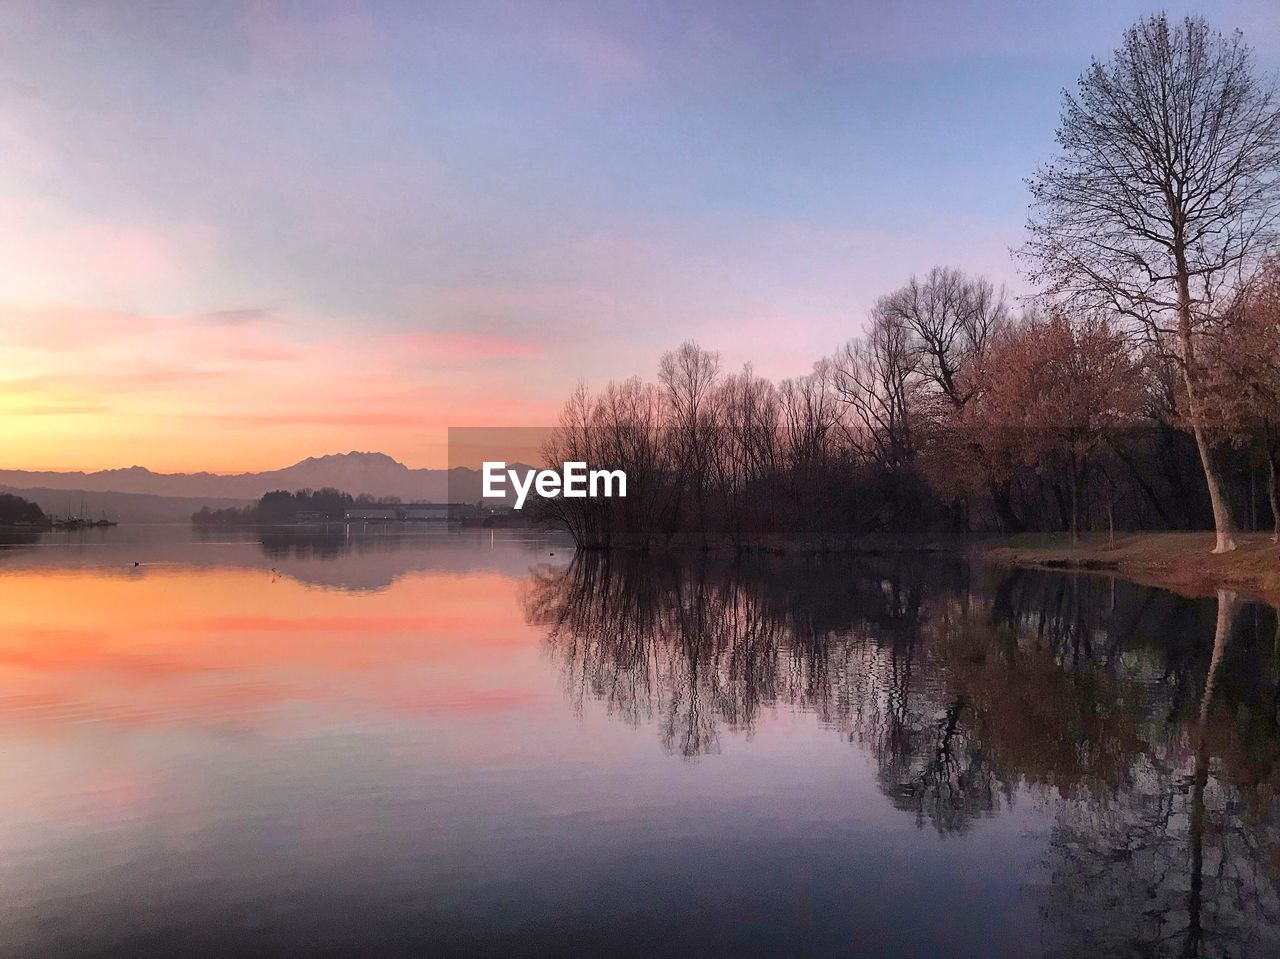 sky, reflection, water, tranquility, scenics - nature, lake, beauty in nature, tranquil scene, tree, sunset, waterfront, idyllic, plant, non-urban scene, no people, nature, cloud - sky, orange color, outdoors, reflection lake